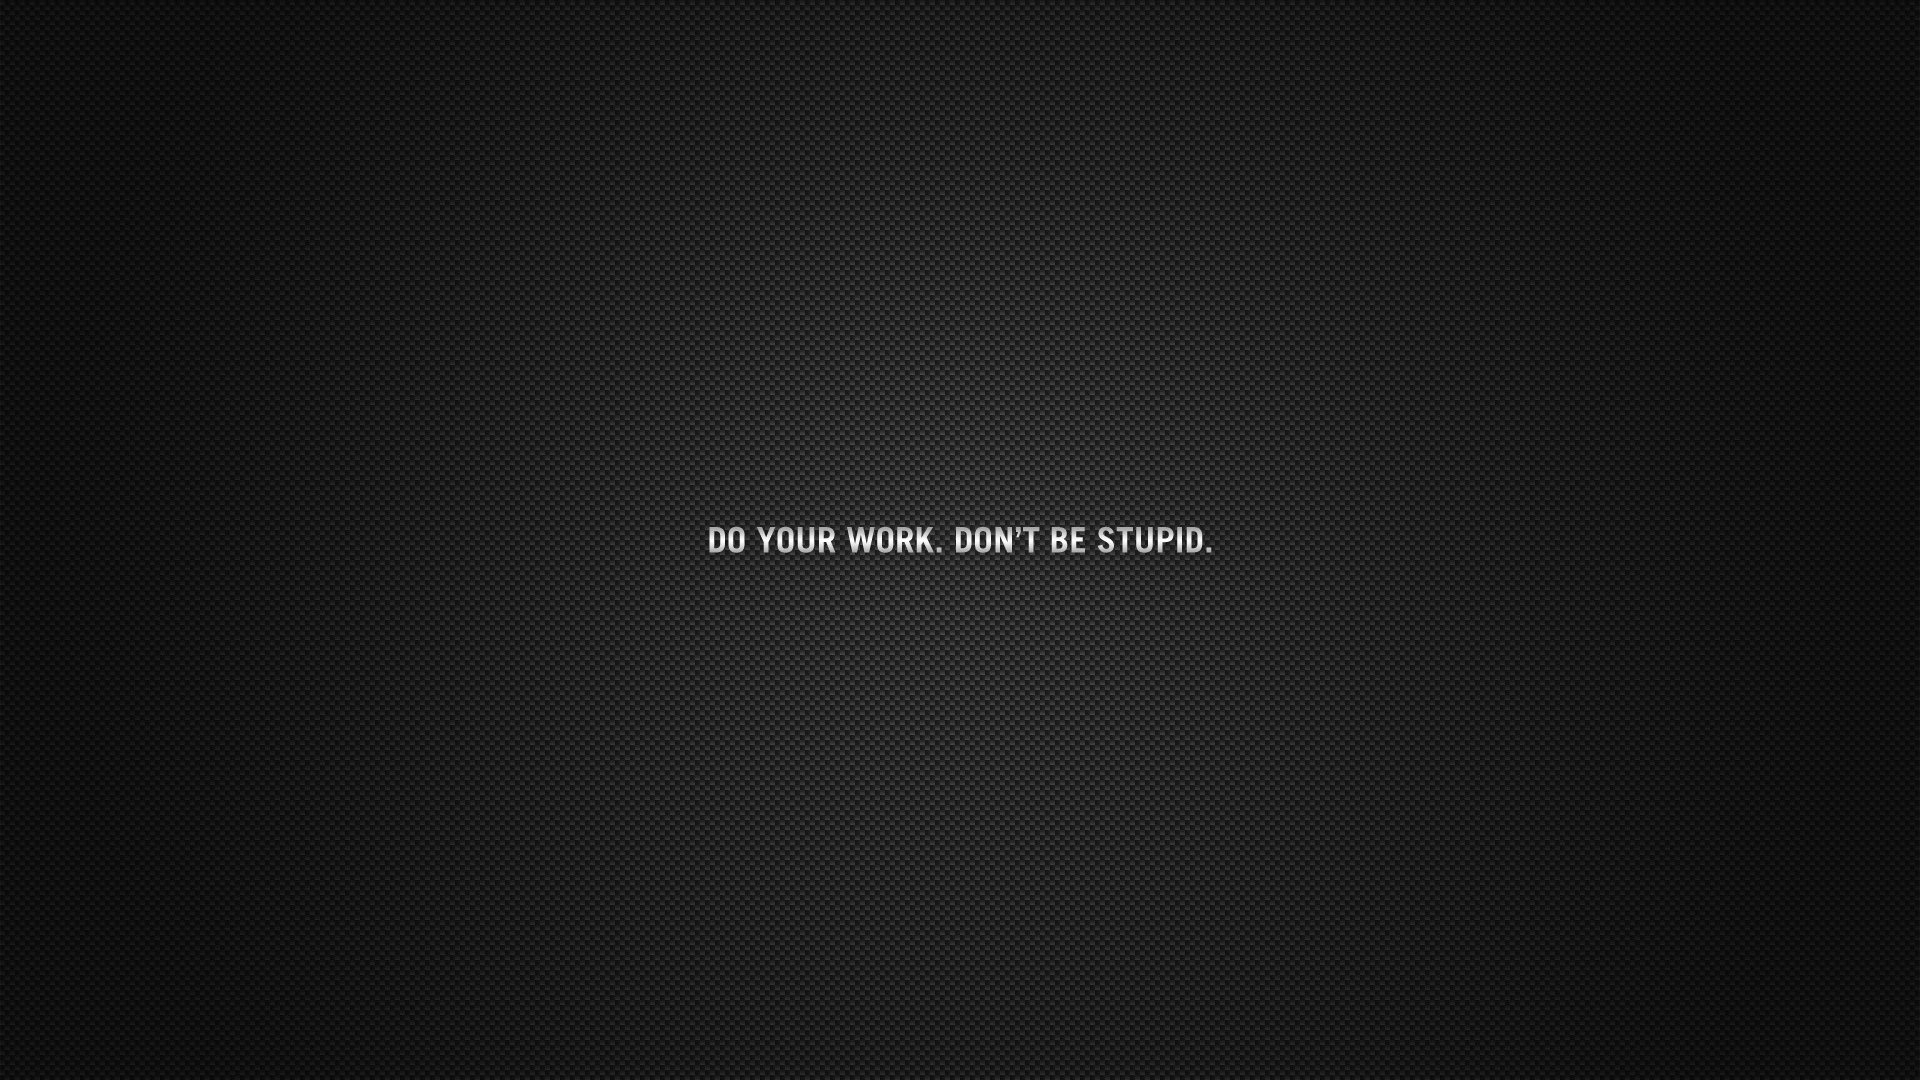 do your work don t be stupid quote